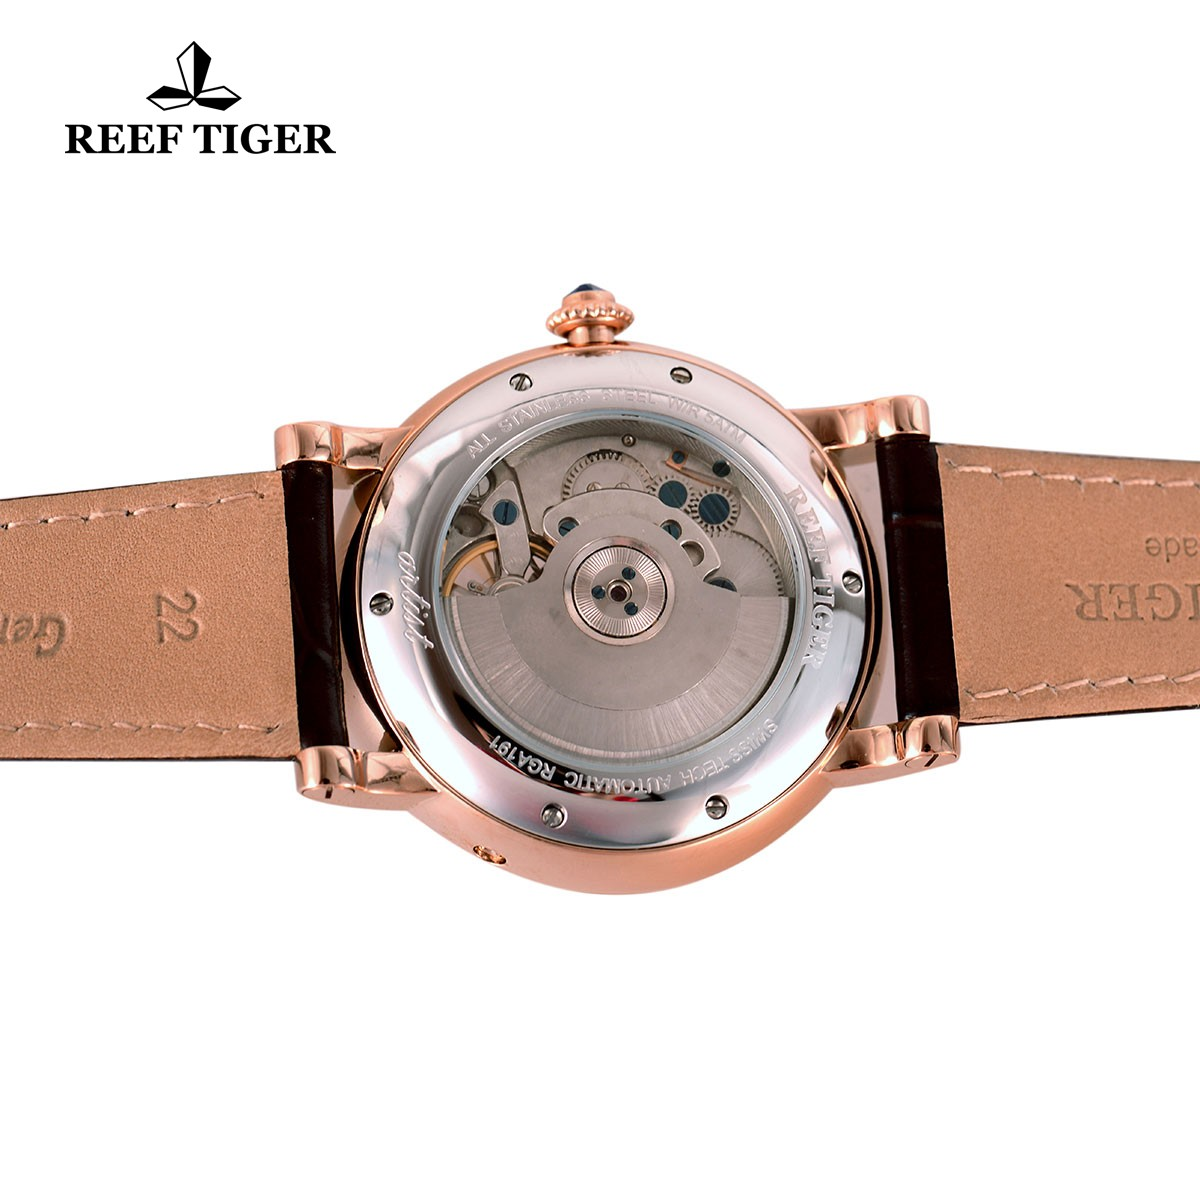 Reef Tiger Carved Spiral Tourbillon Watch with Day Date White Dial Alligator Strap RGA191